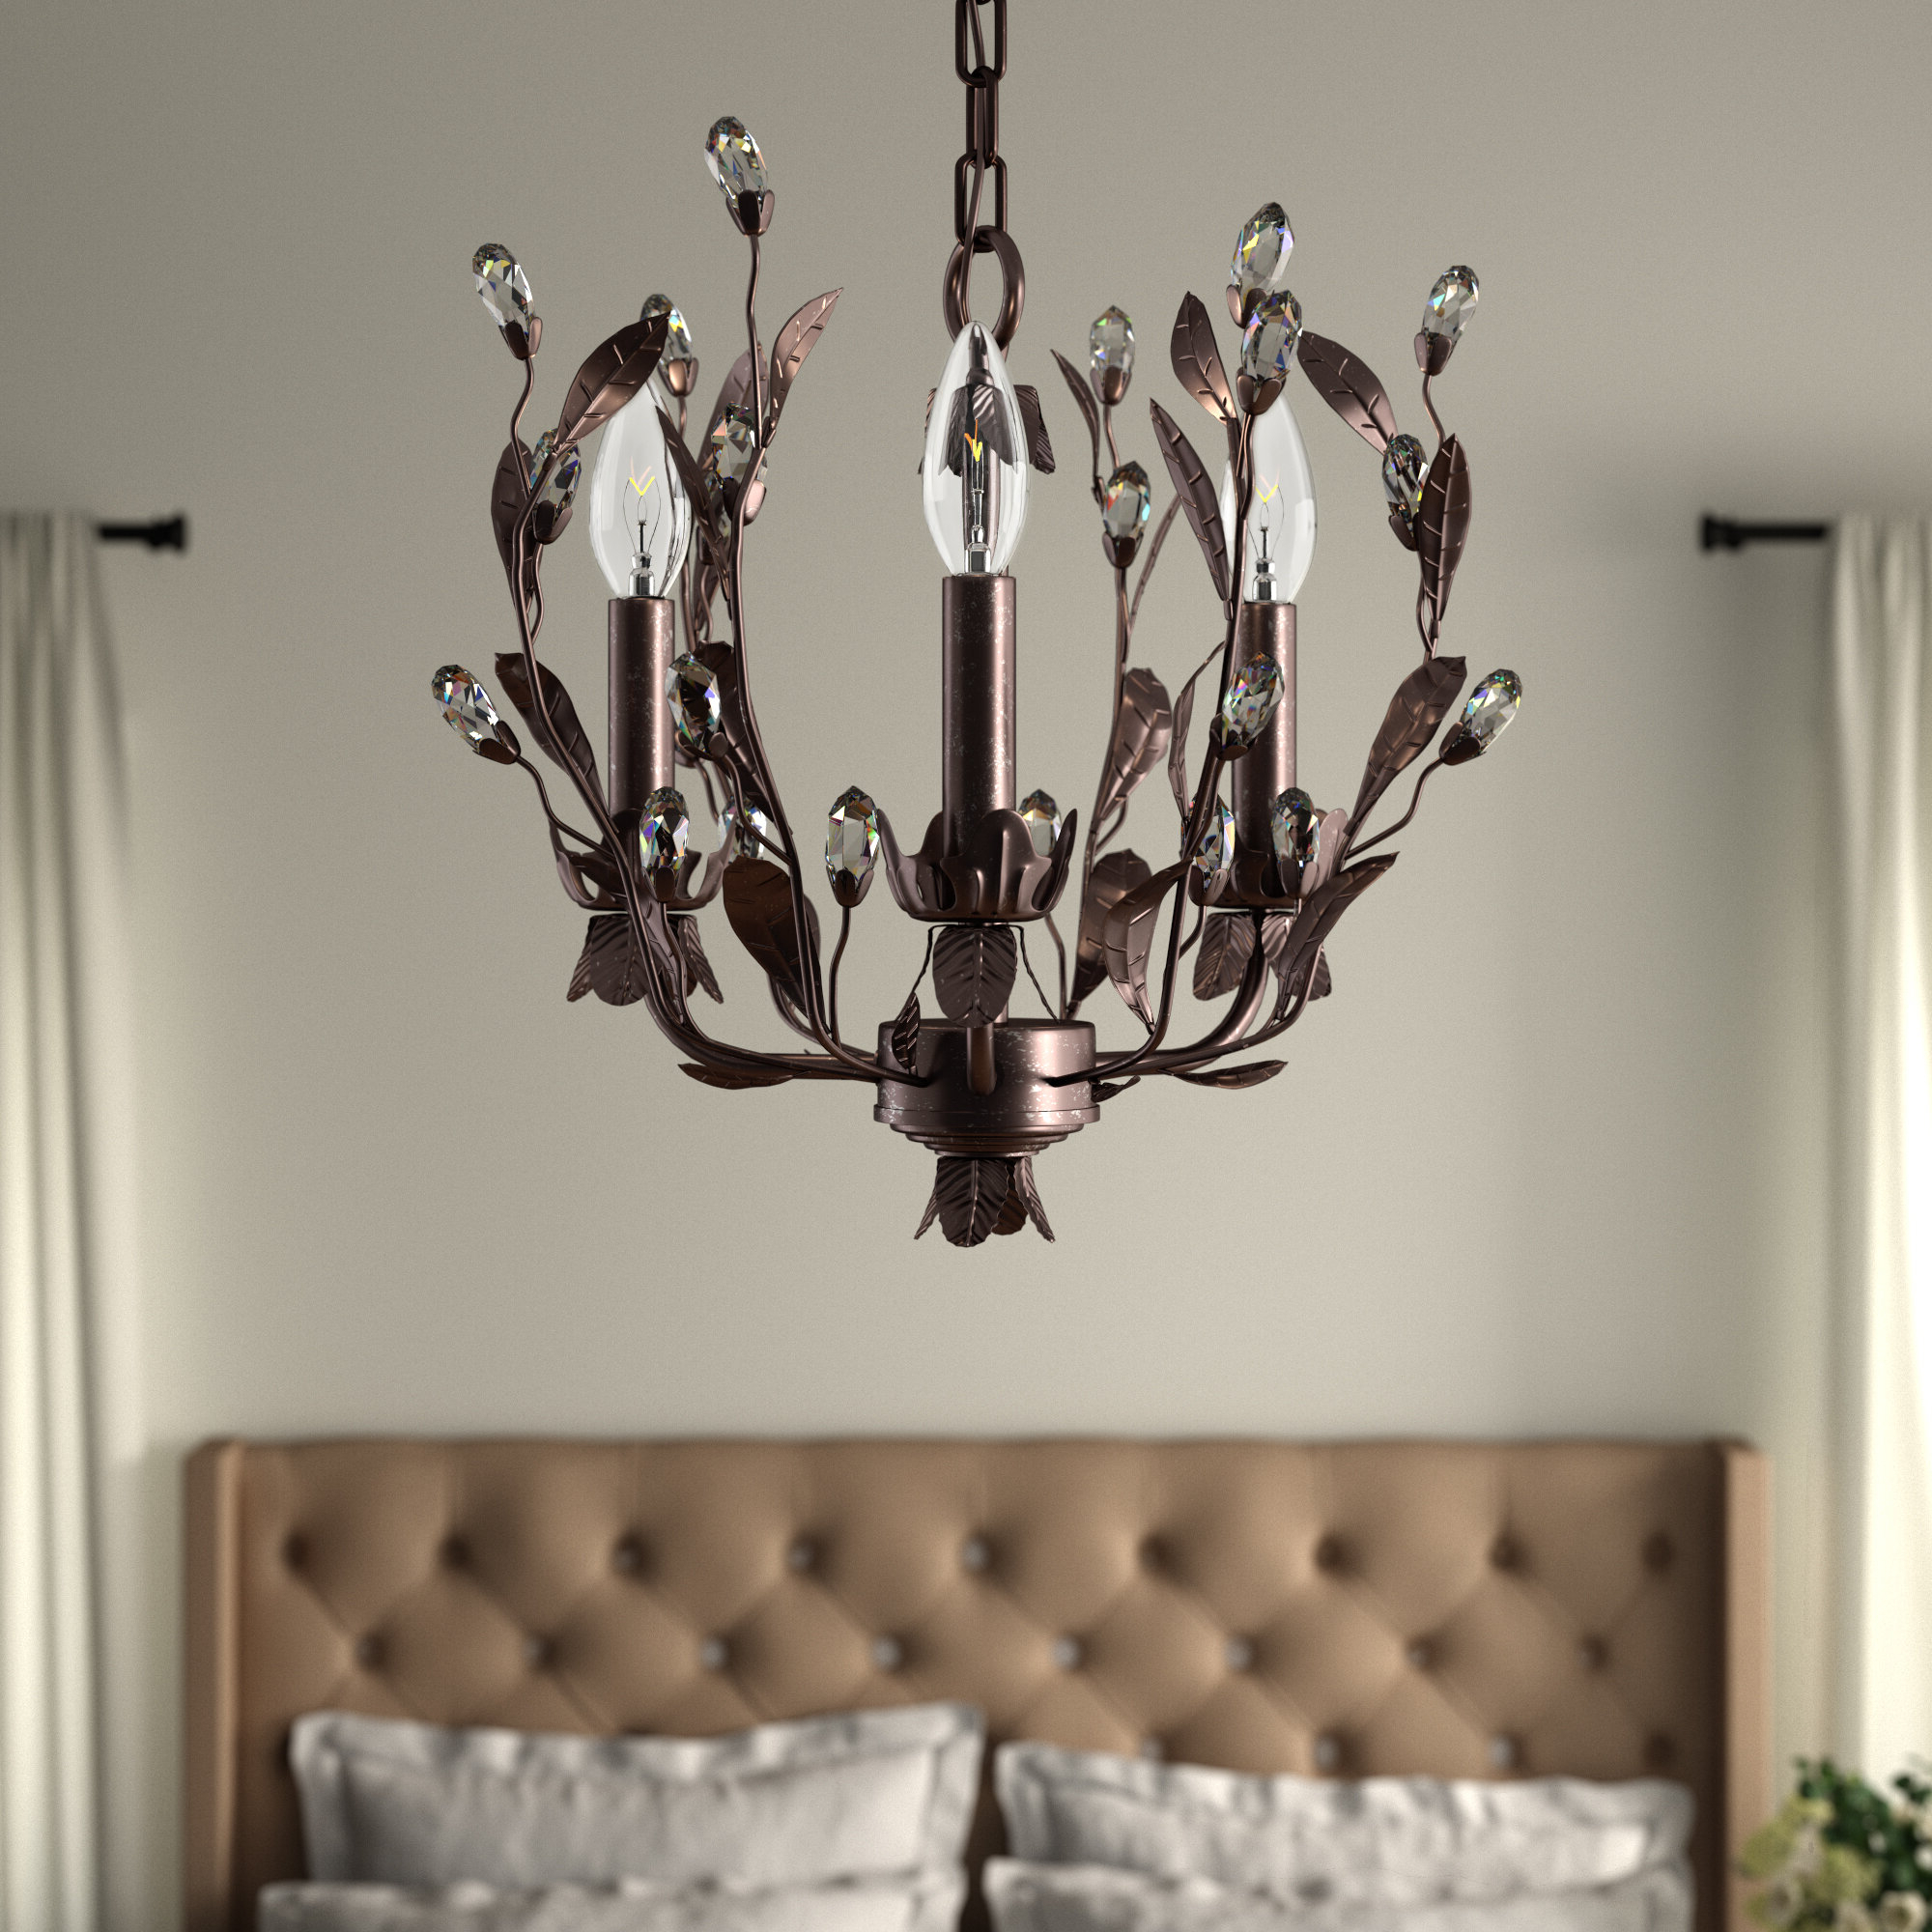 Giovanna 3 Light Candle Style Chandelier Within Preferred Hesse 5 Light Candle Style Chandeliers (Gallery 19 of 20)